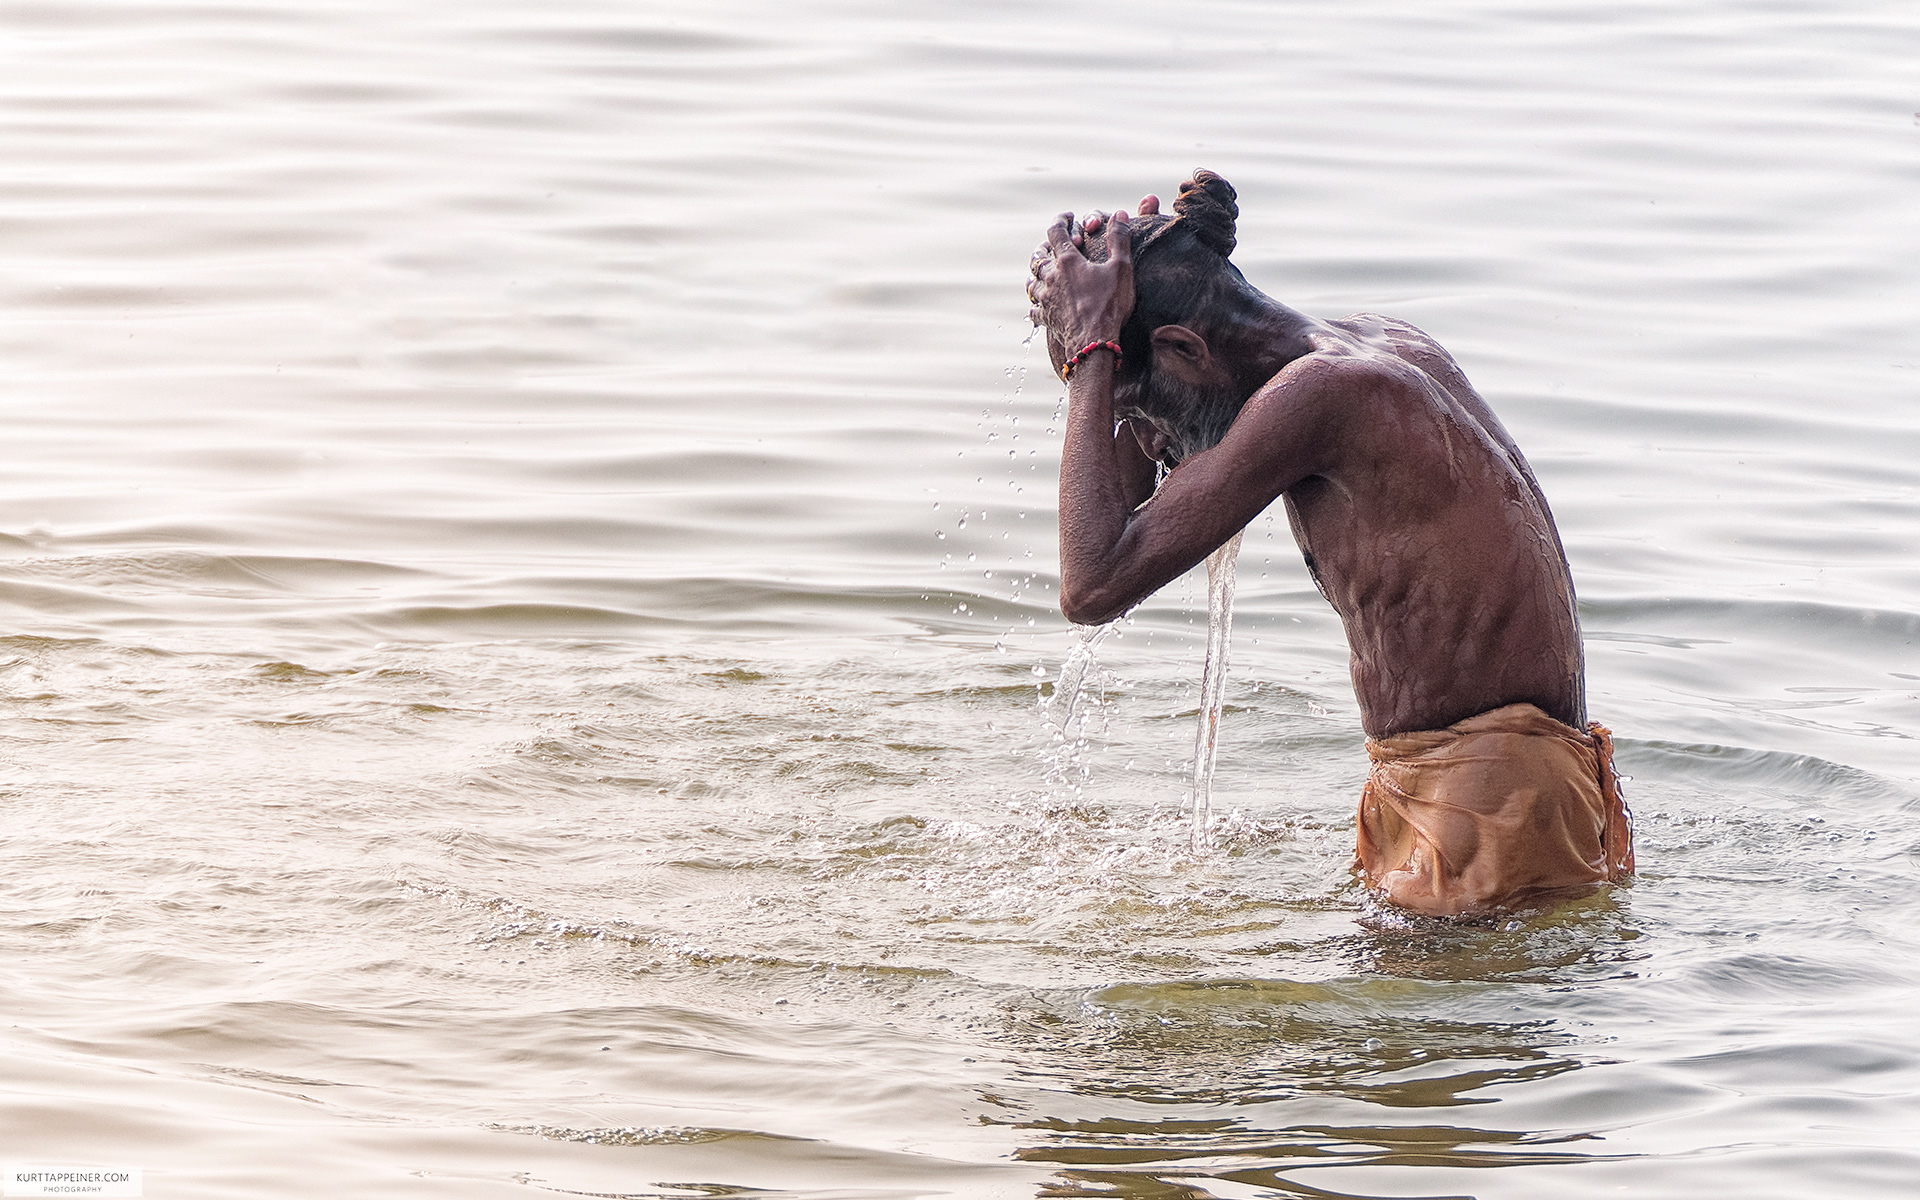 The morning bath in the Ganges